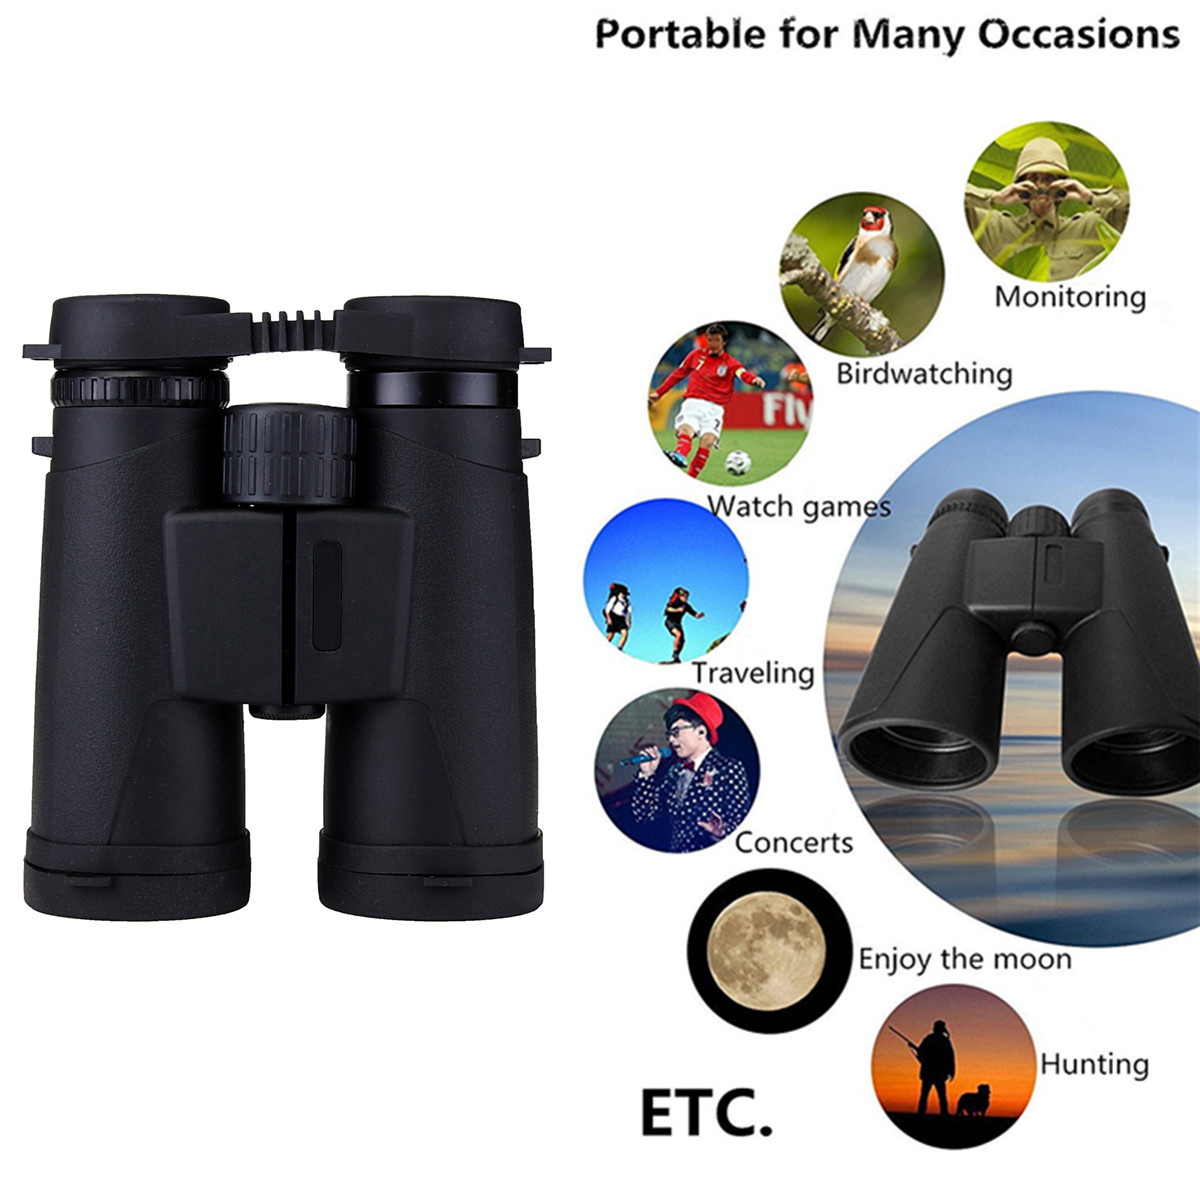 10X 42mm Waterproof Roof Prism Zoom Binoculars Telescope HD for Mobile Phone